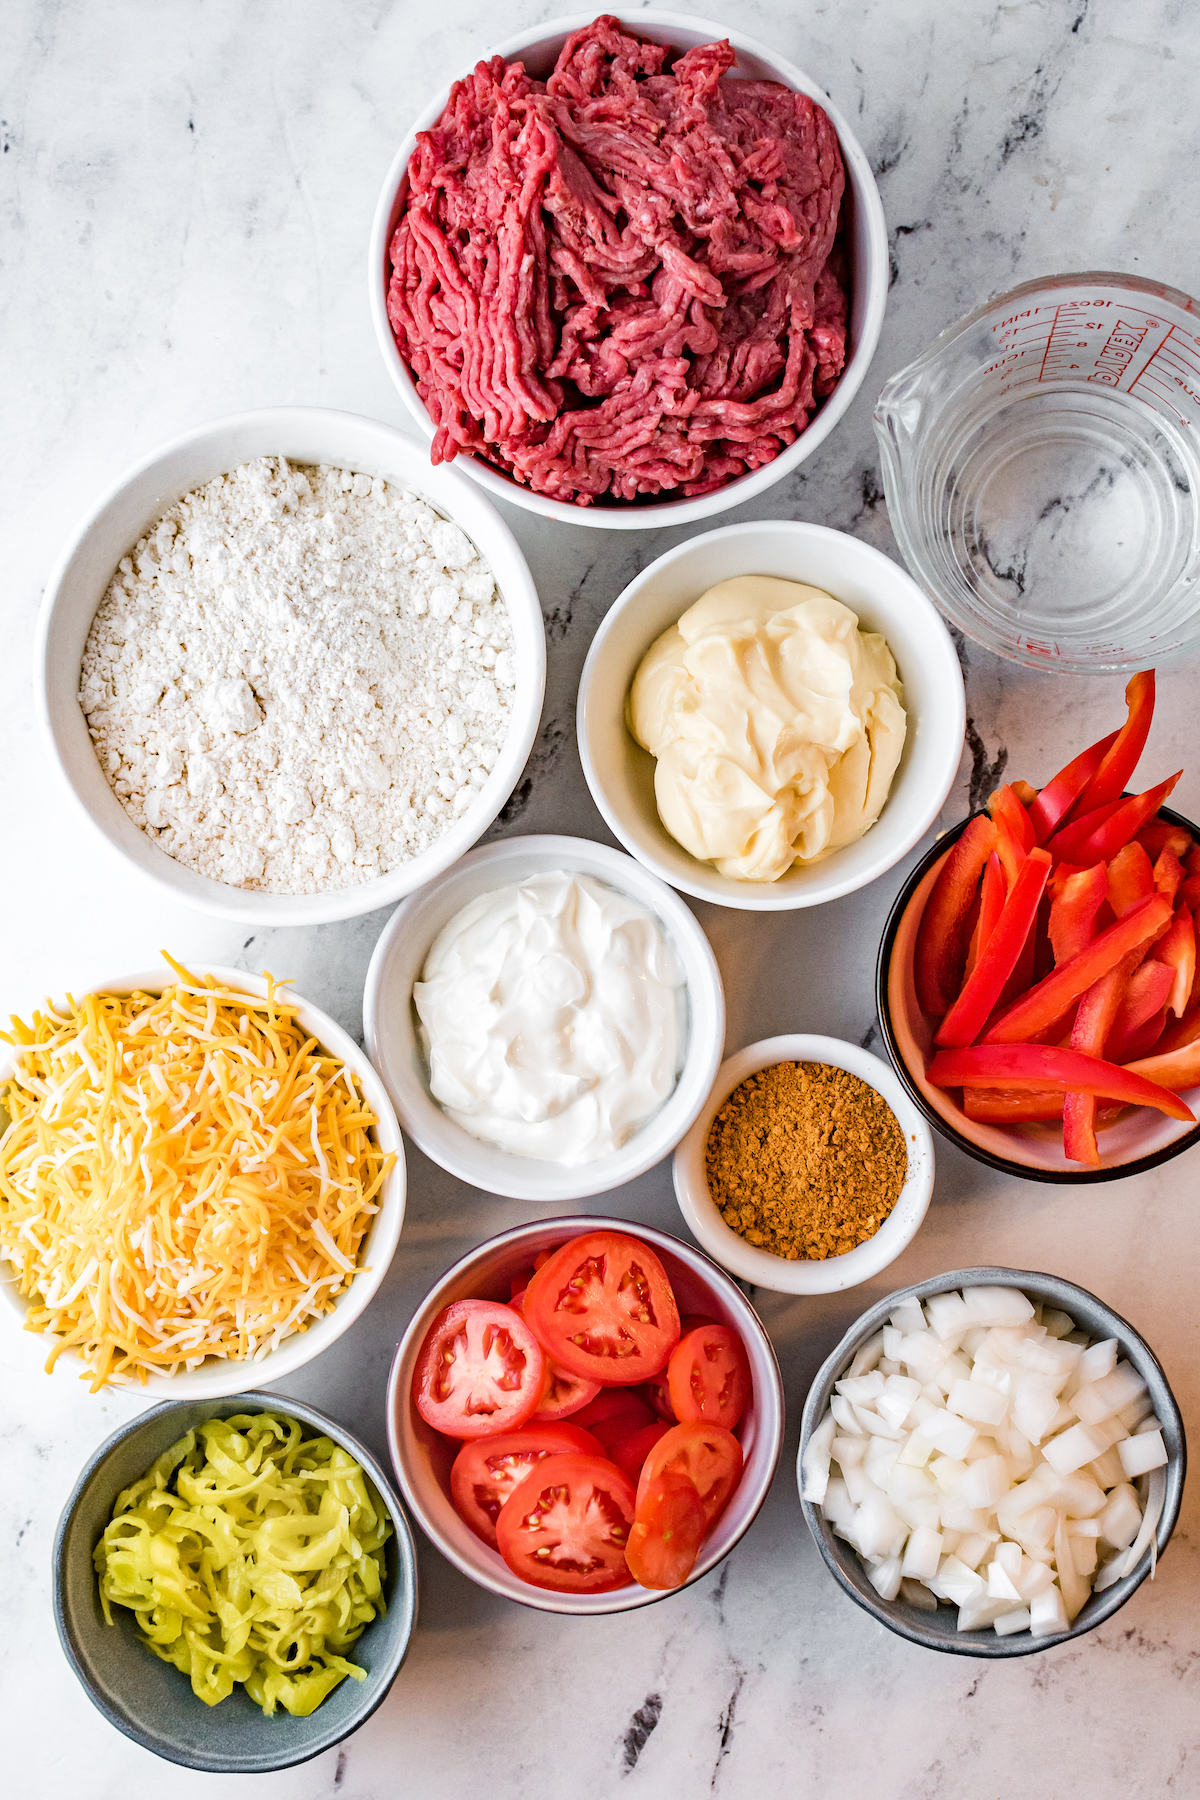 Overhead view of bowls filled with the raw ingredients to make John Wayne casserole.